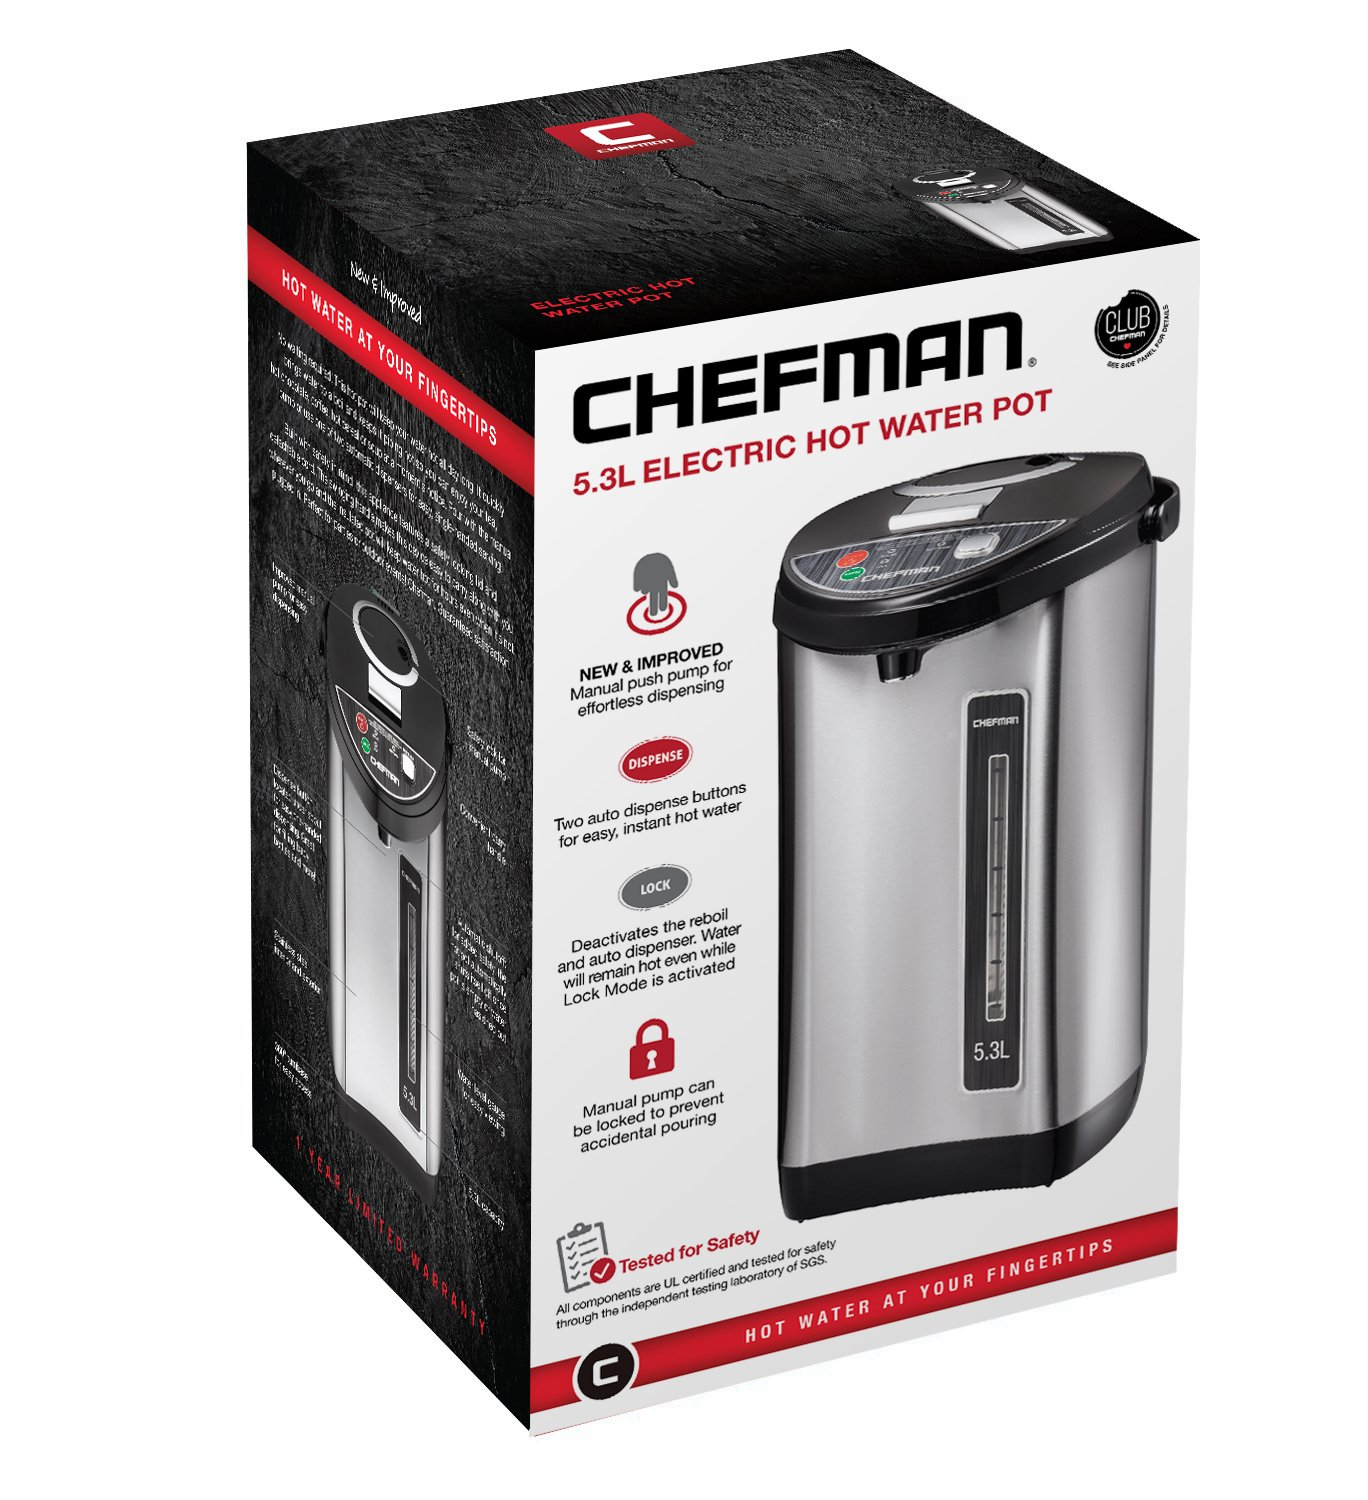 Chefman Instant Electric Hot Water Pot, Safety Lock To Prevent Spillage, 3 Dispense Buttons, Auto Shutoff, Easy View Water Level, Hot Water Urn, 700W & 120V, 5.3 Liters, Stainless Steel